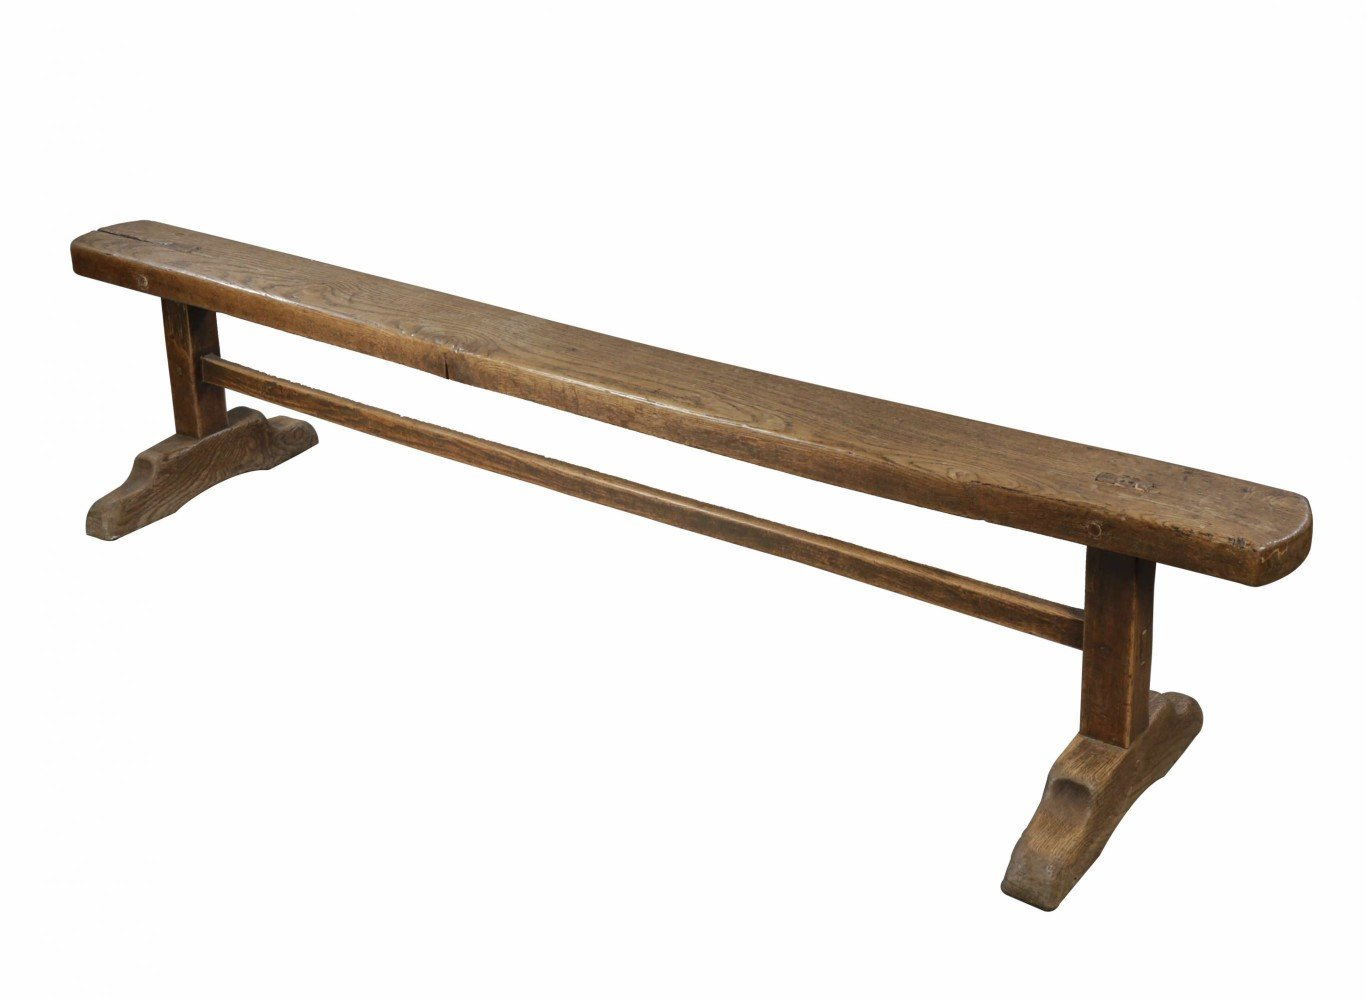 Oak or Elmwood Rustic Bench